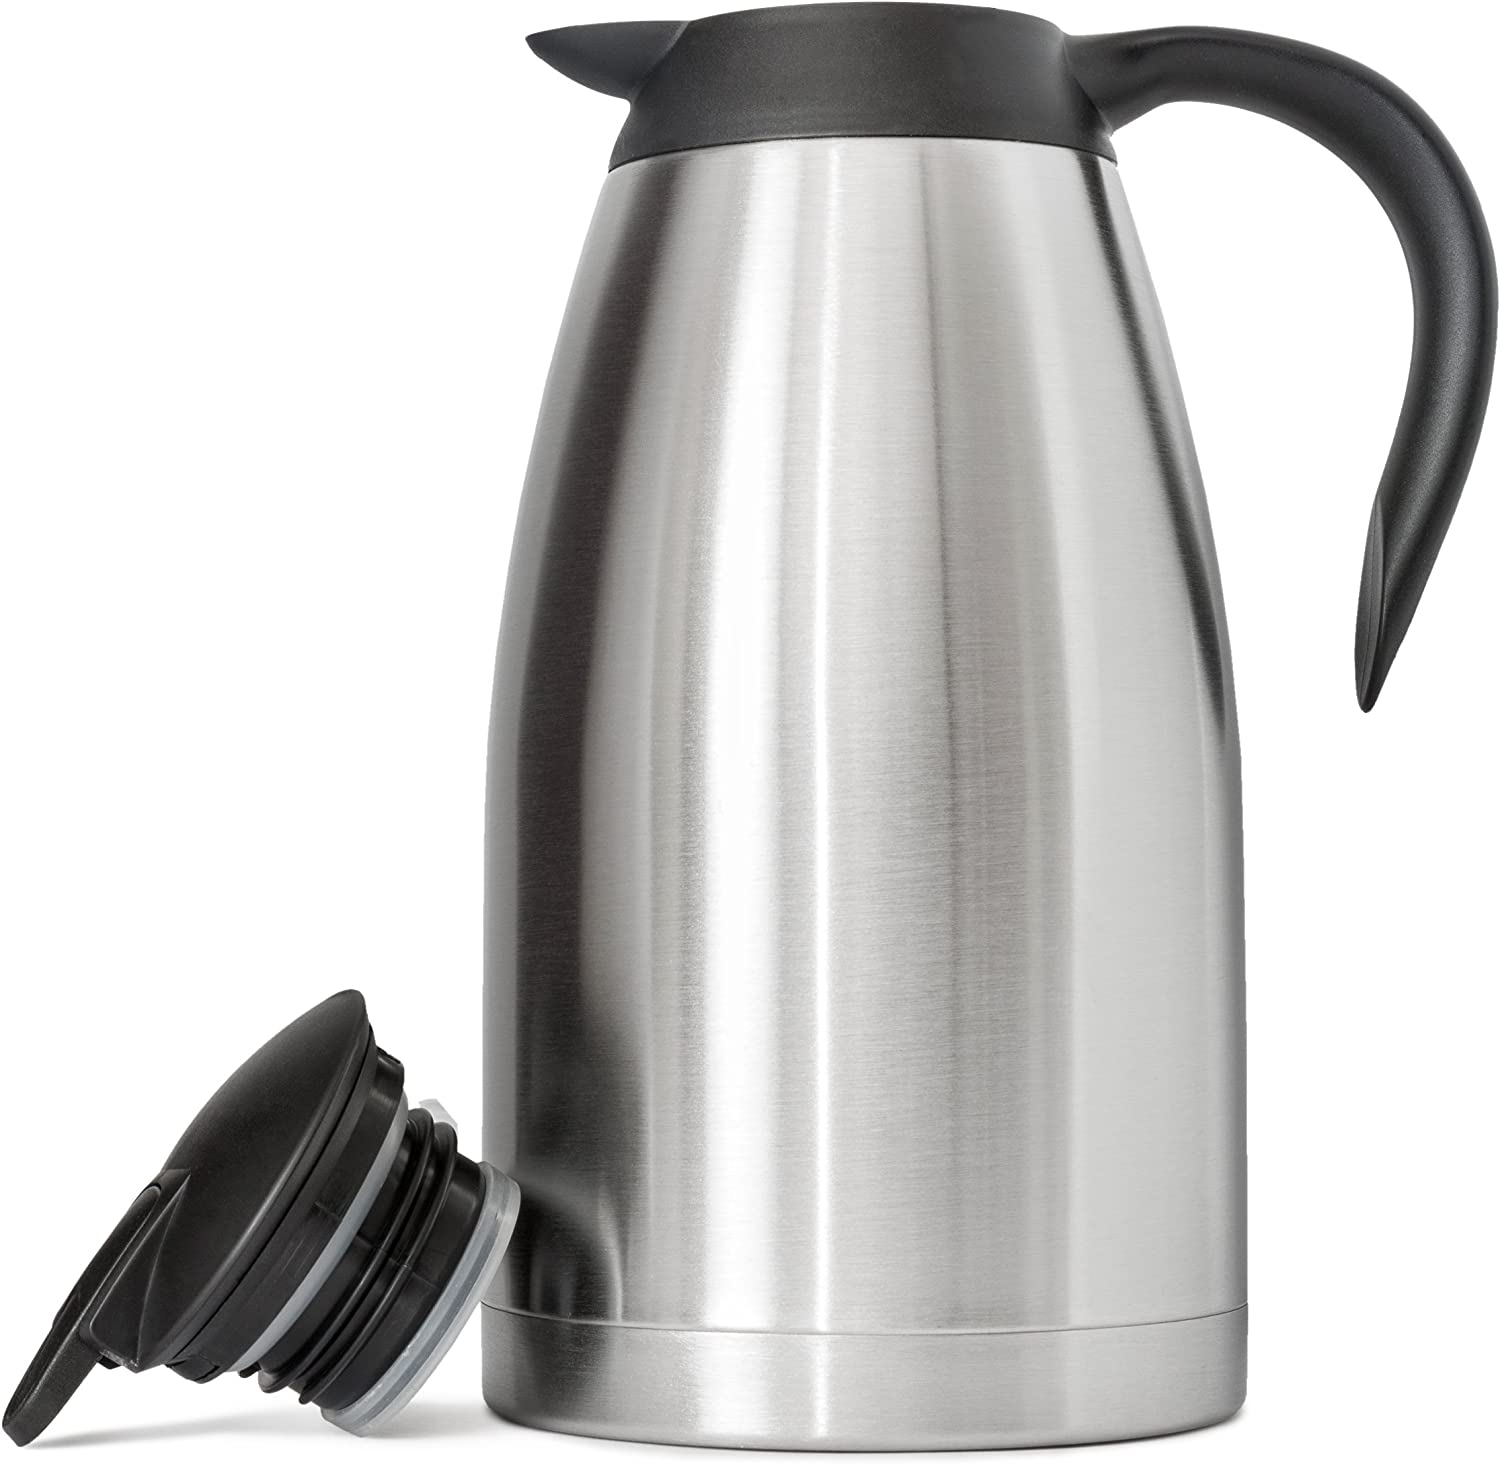 68 Oz (2 Liter) Thermal Coffee Carafe | German-Designed, Stainless Steel Insulated Double Wall | BPA-Free Vacuum Thermos | Effectively Keeps Beverages Hot (Warm up to 12 Hrs) or Cold (up to 24 Hrs)